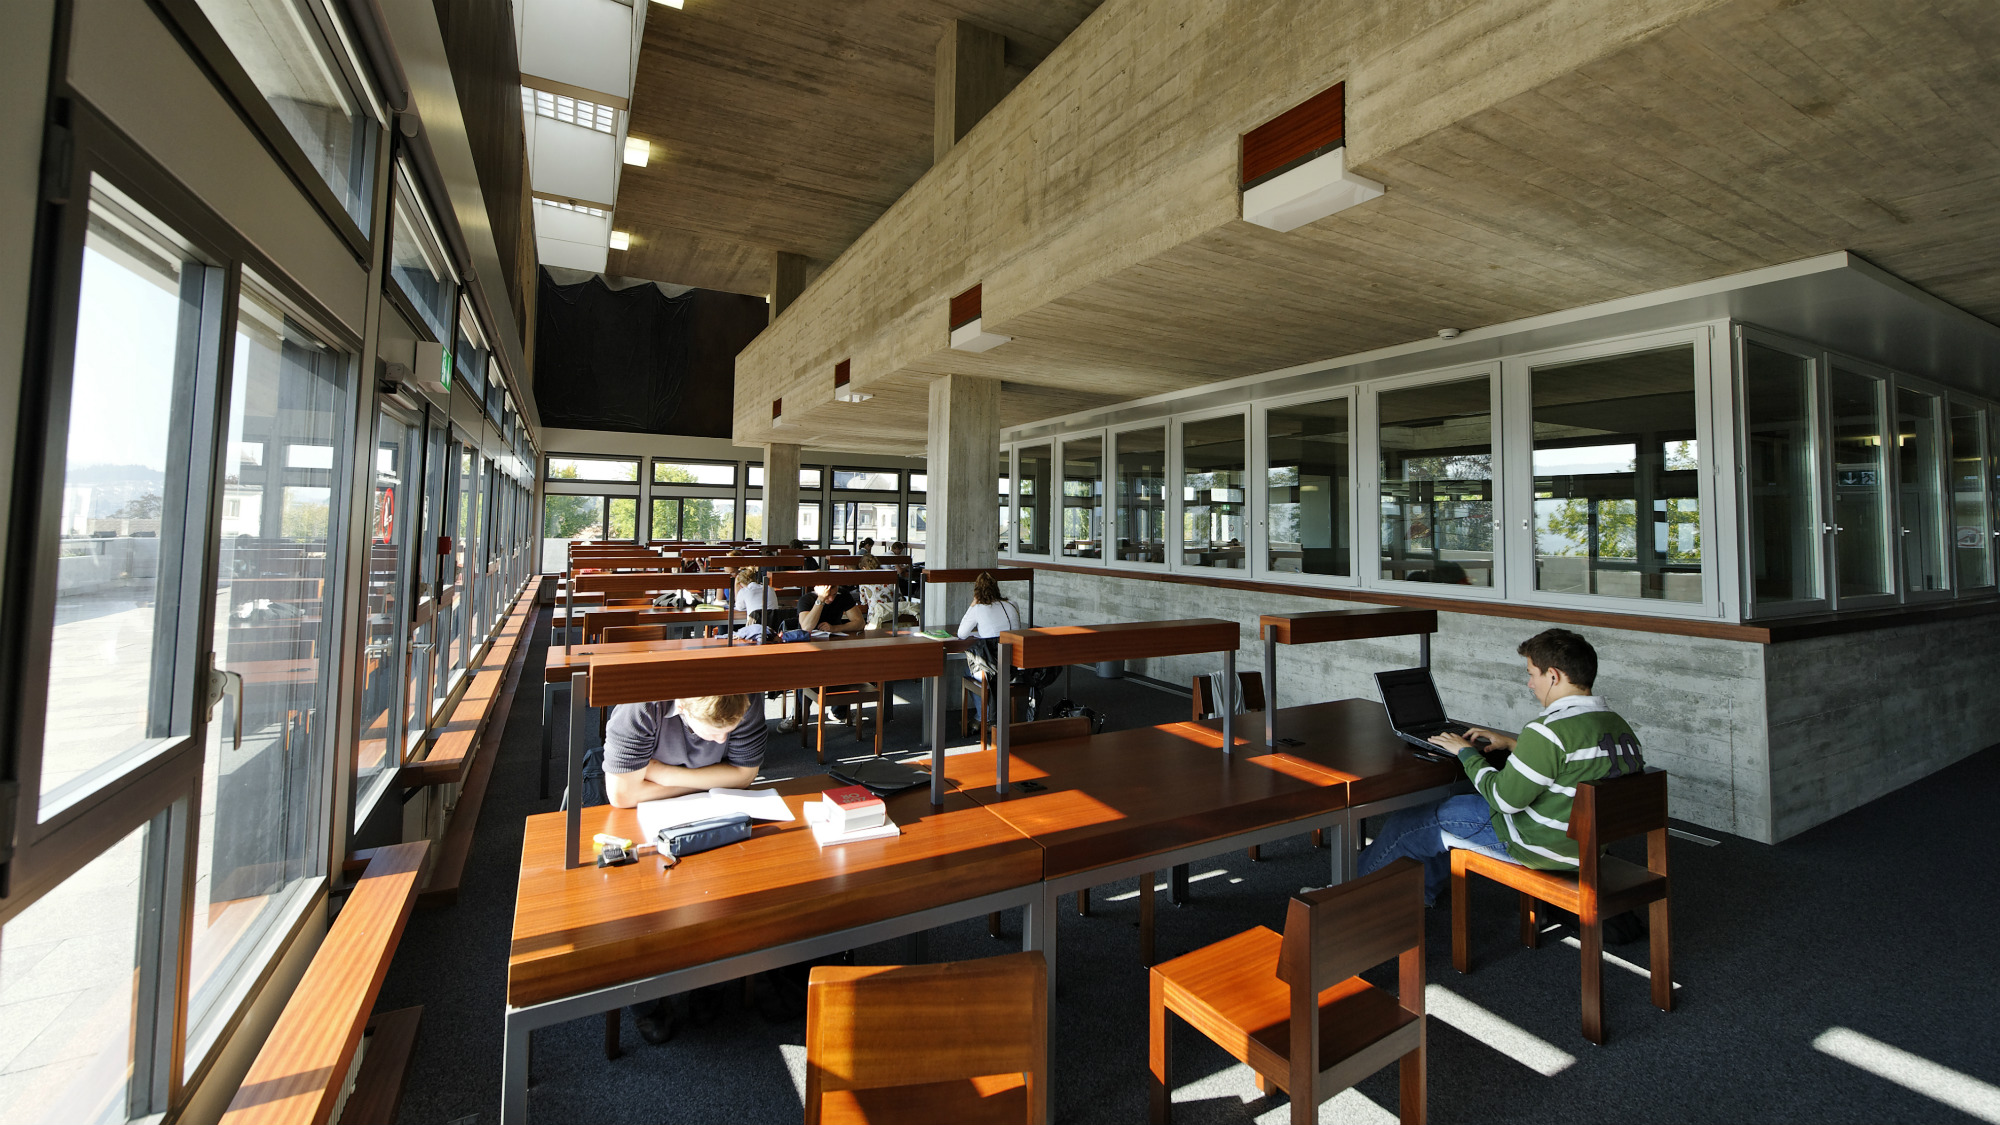 Study area at the University of St.Gallen (HSG)